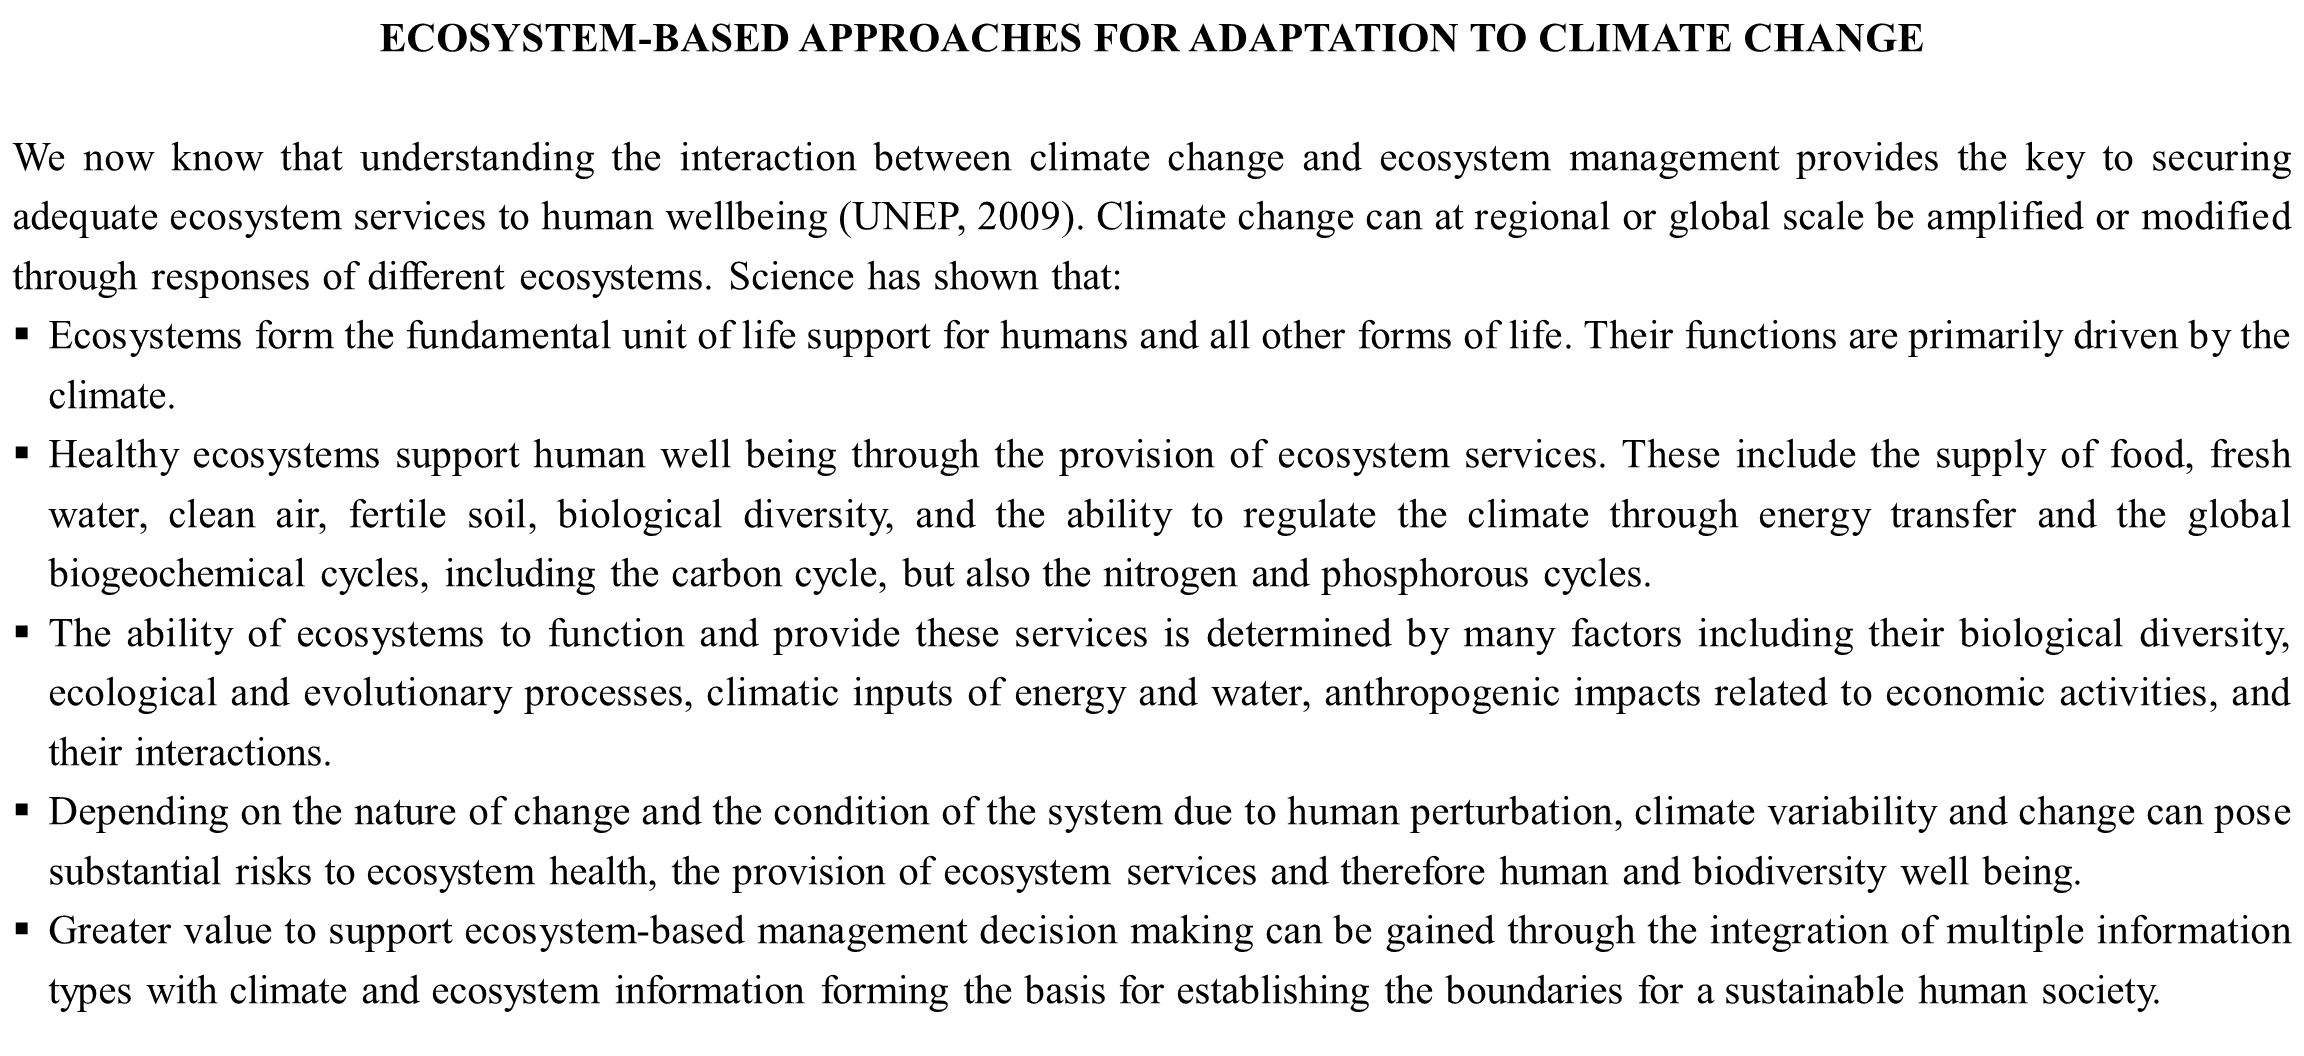 ECOSYSTEM-BASED APPROACHES FOR ADAPTATION TO CLIMATE CHANGE